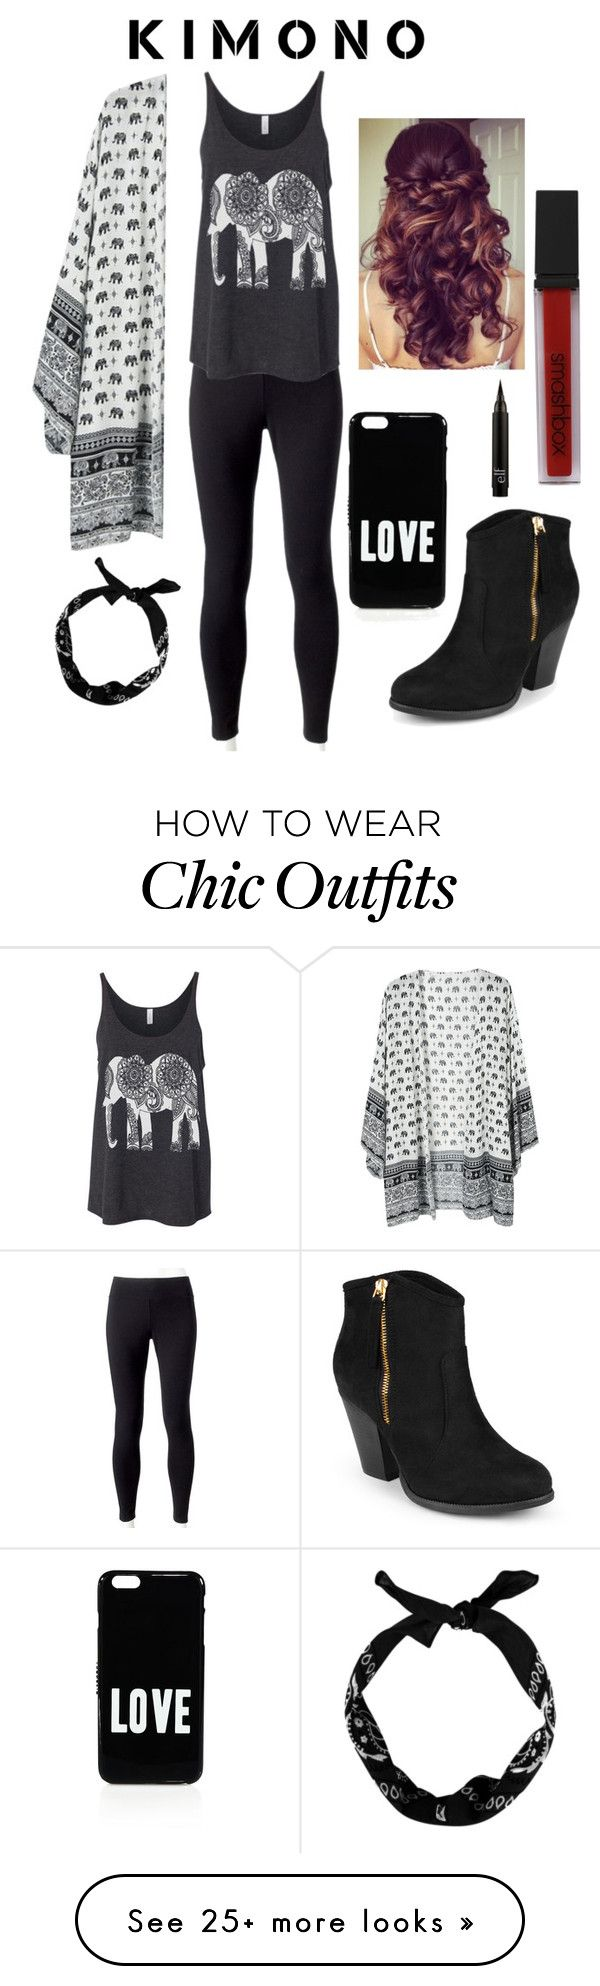 """""""Elephant Kimono"""" by soph13-13 on Polyvore featuring Jockey, New Look, Givenchy, Smashbox, Journee Collection and Retrò"""